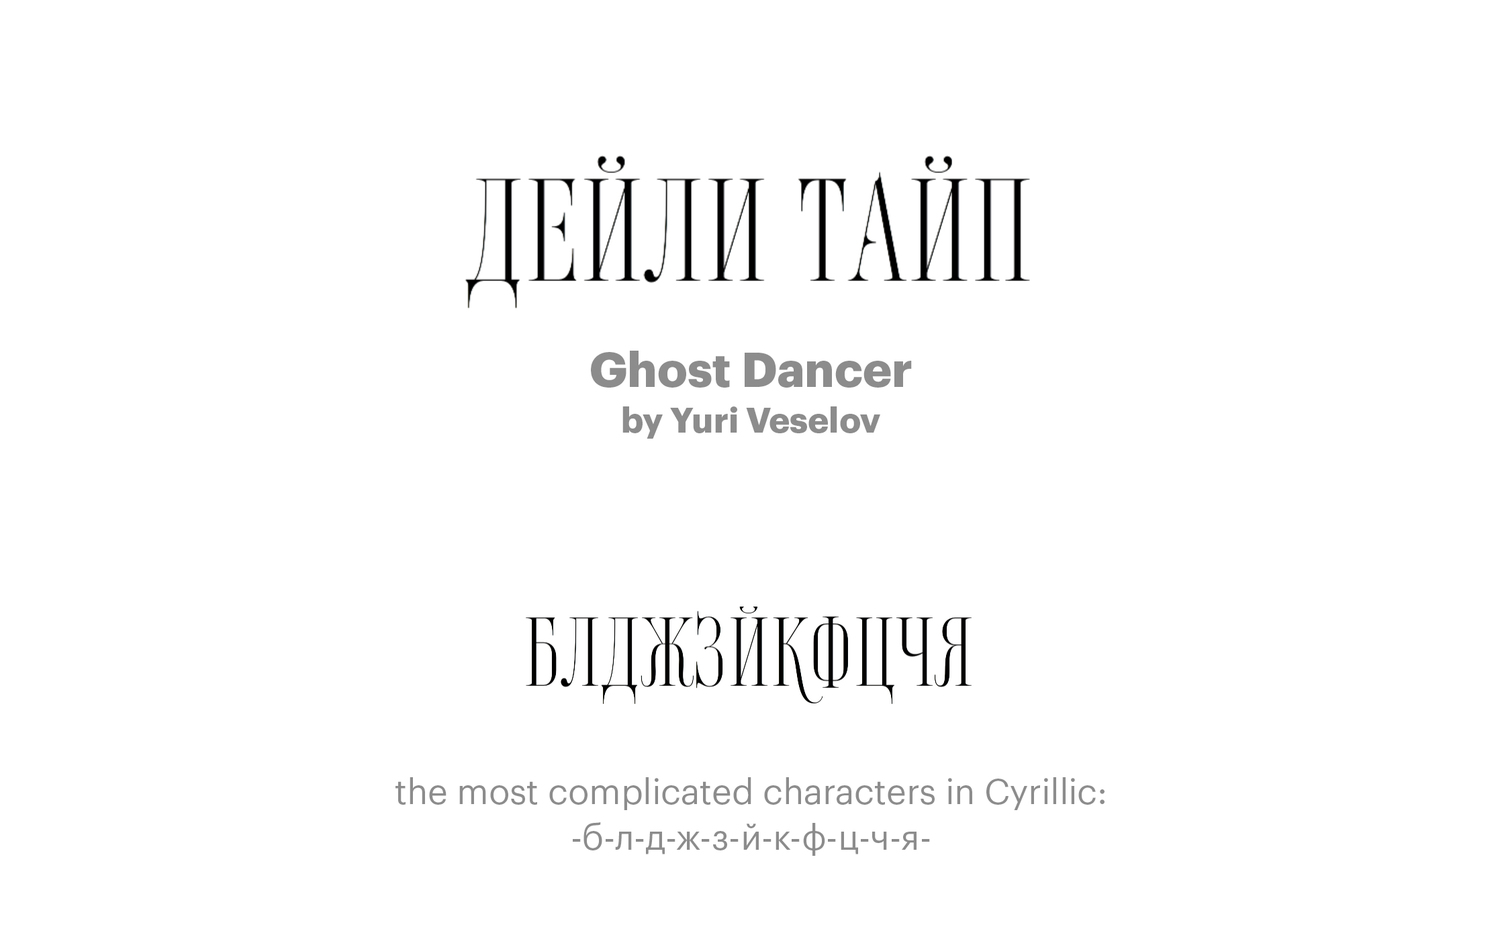 Ghost-Dancer-by-Yuri-Veselov